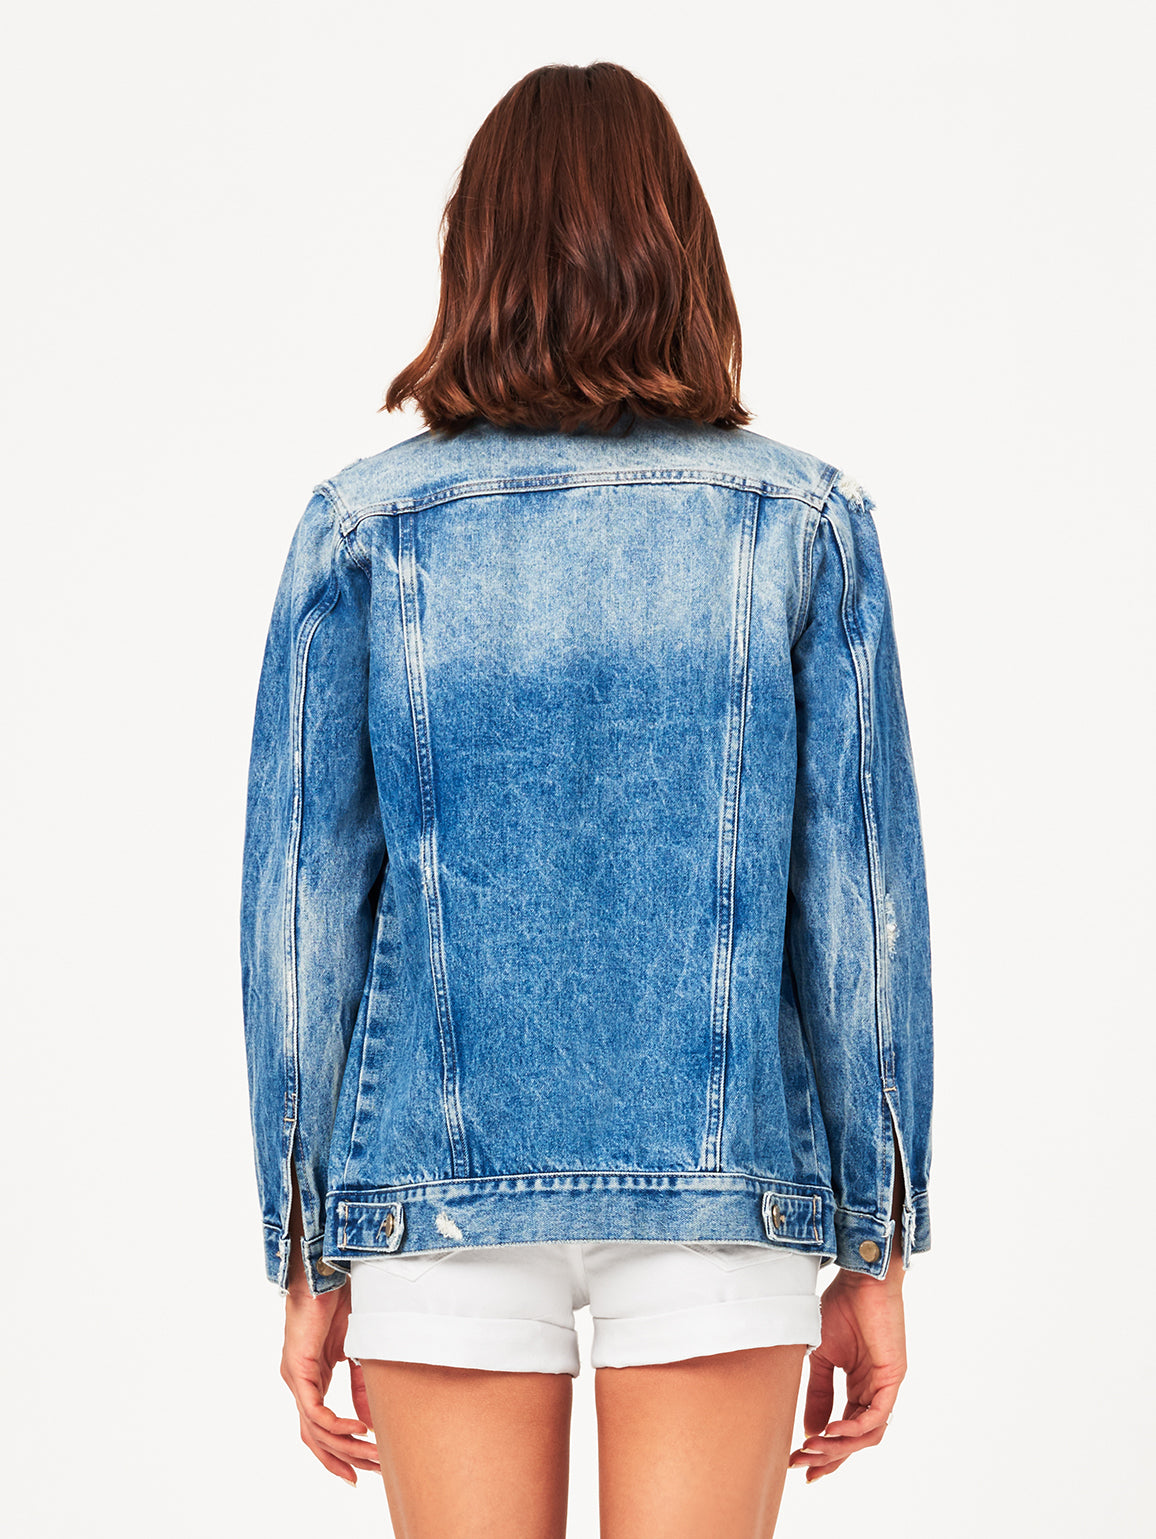 Clyde Classic Trucker Jacket | Wild Side DL 1961 Denim